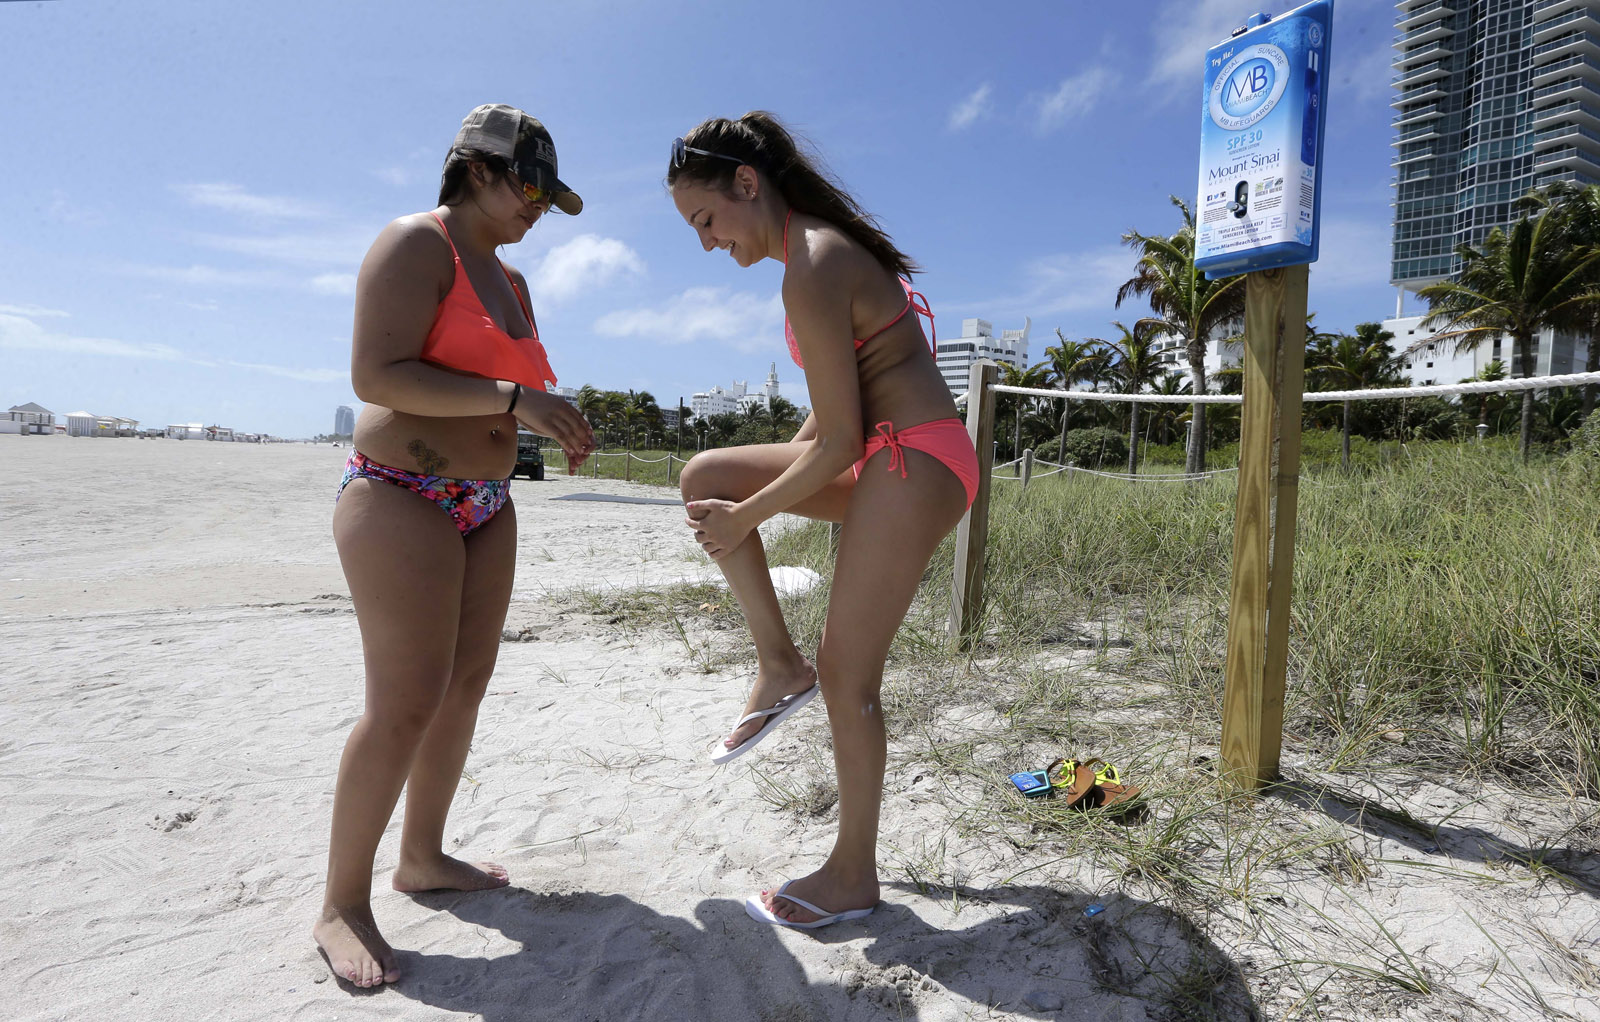 CDC: Americans not regularly using sunscreen